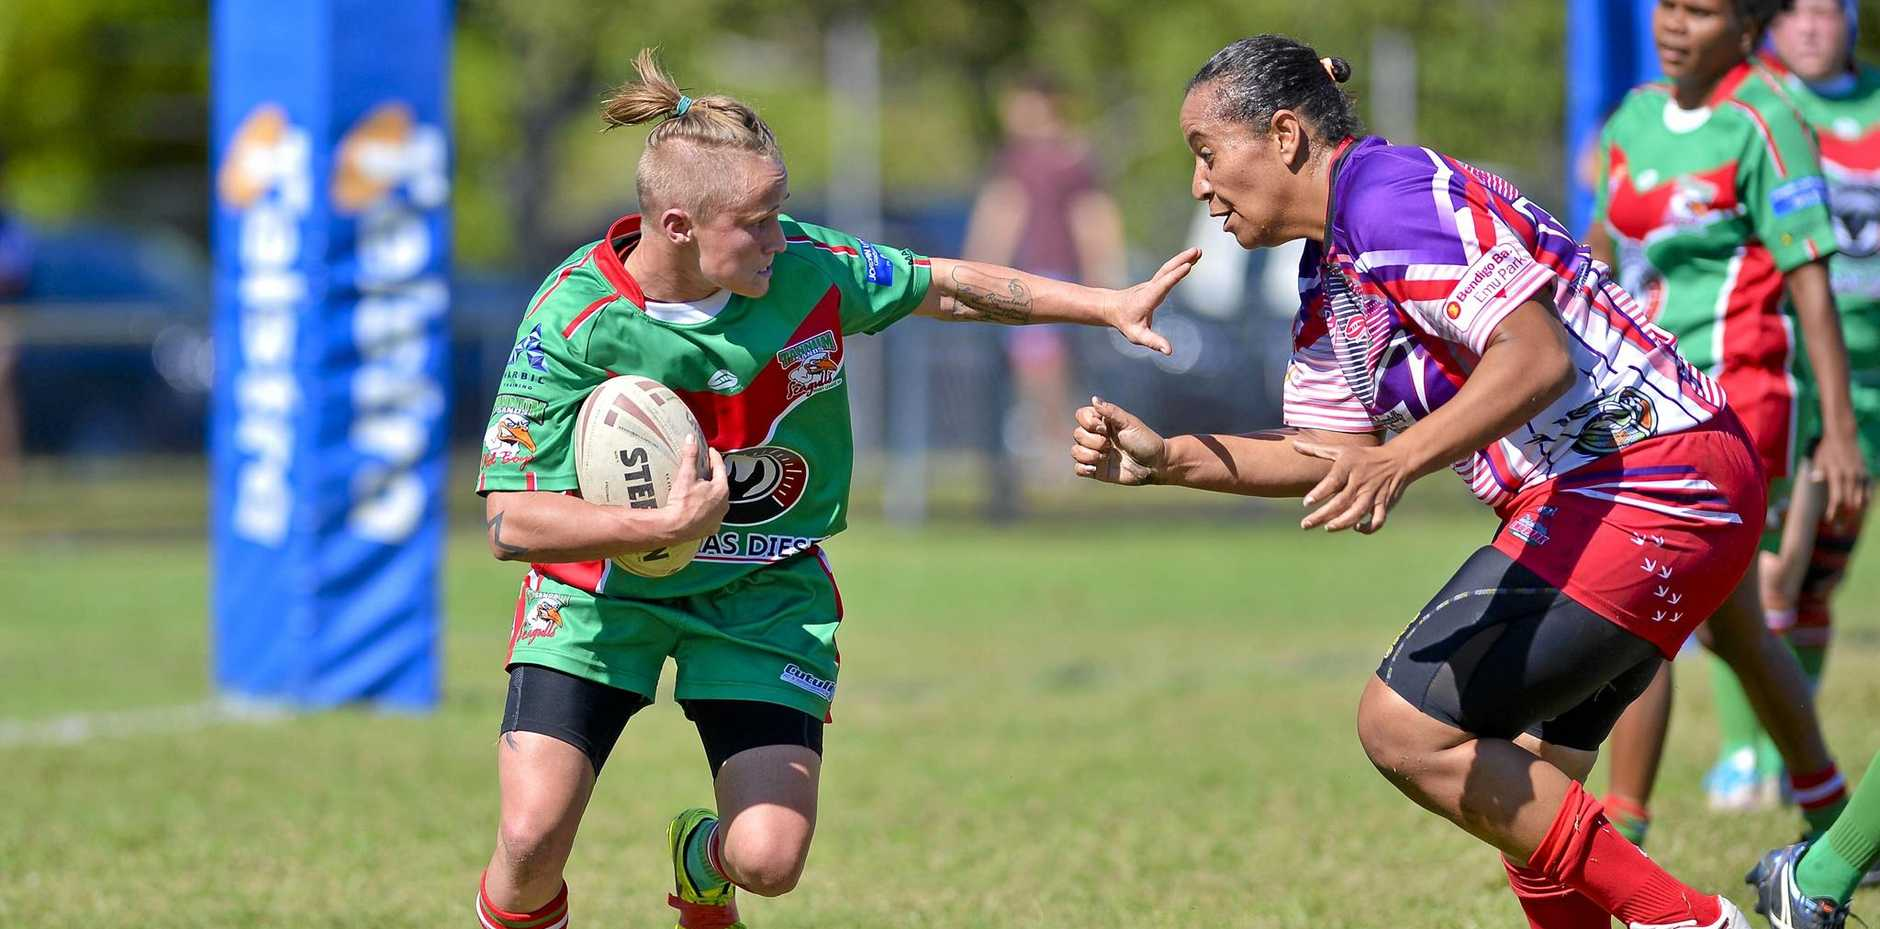 TOUGH: Tannum Sands Seagals player Krystal Sulter fends off Emu Park's Charlene Mann during their finals loss at the weekend. The Seagals will play Wallabys next weekend.